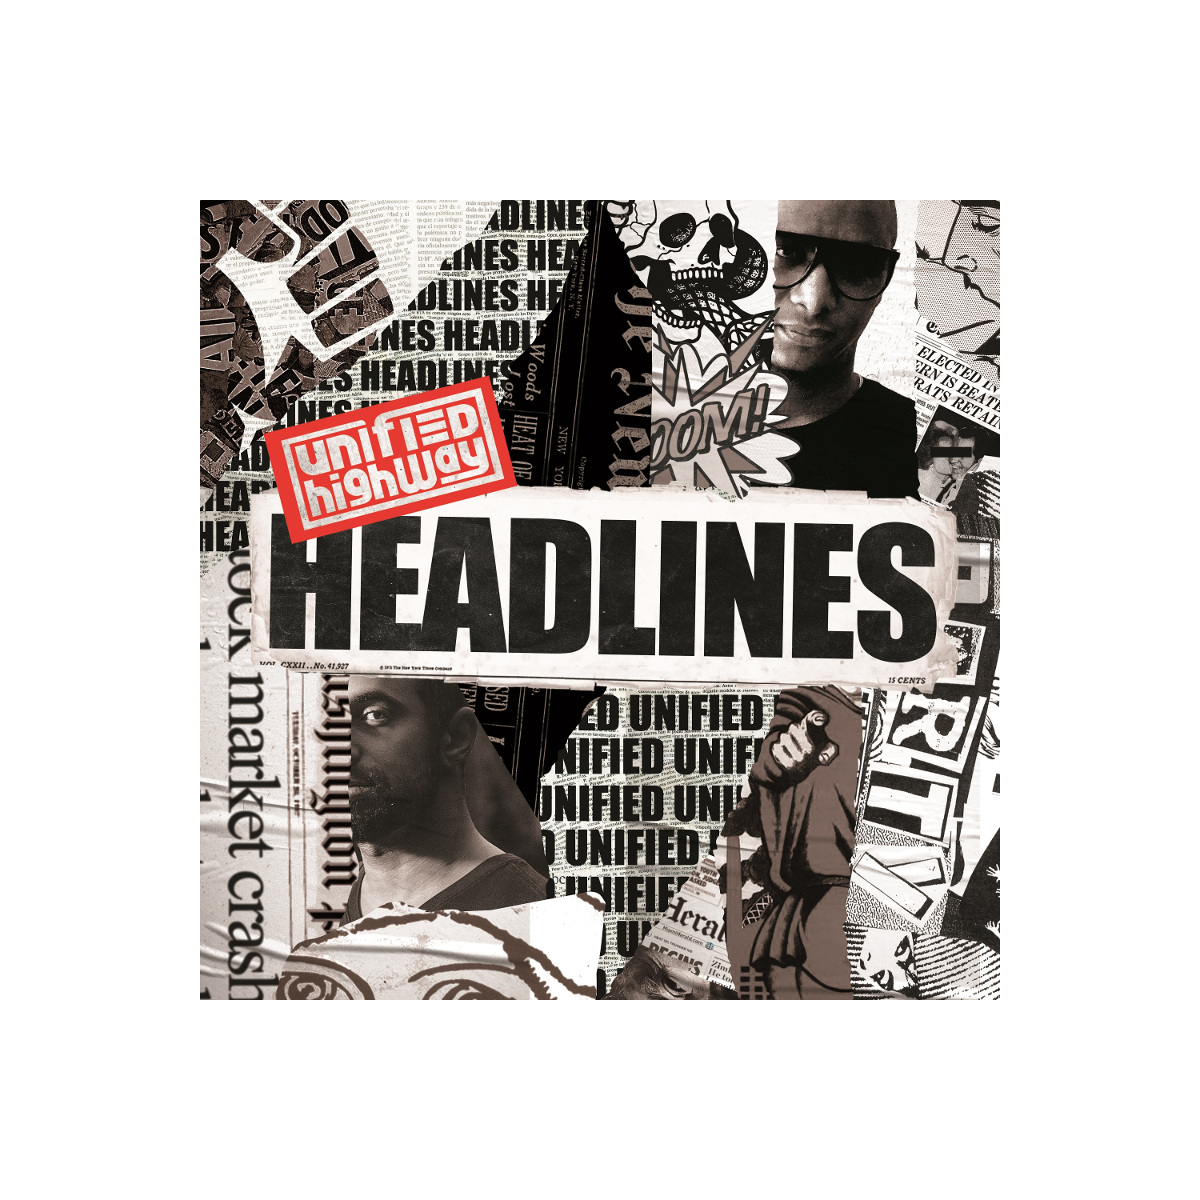 Unified Highway: Headlines Digital Download